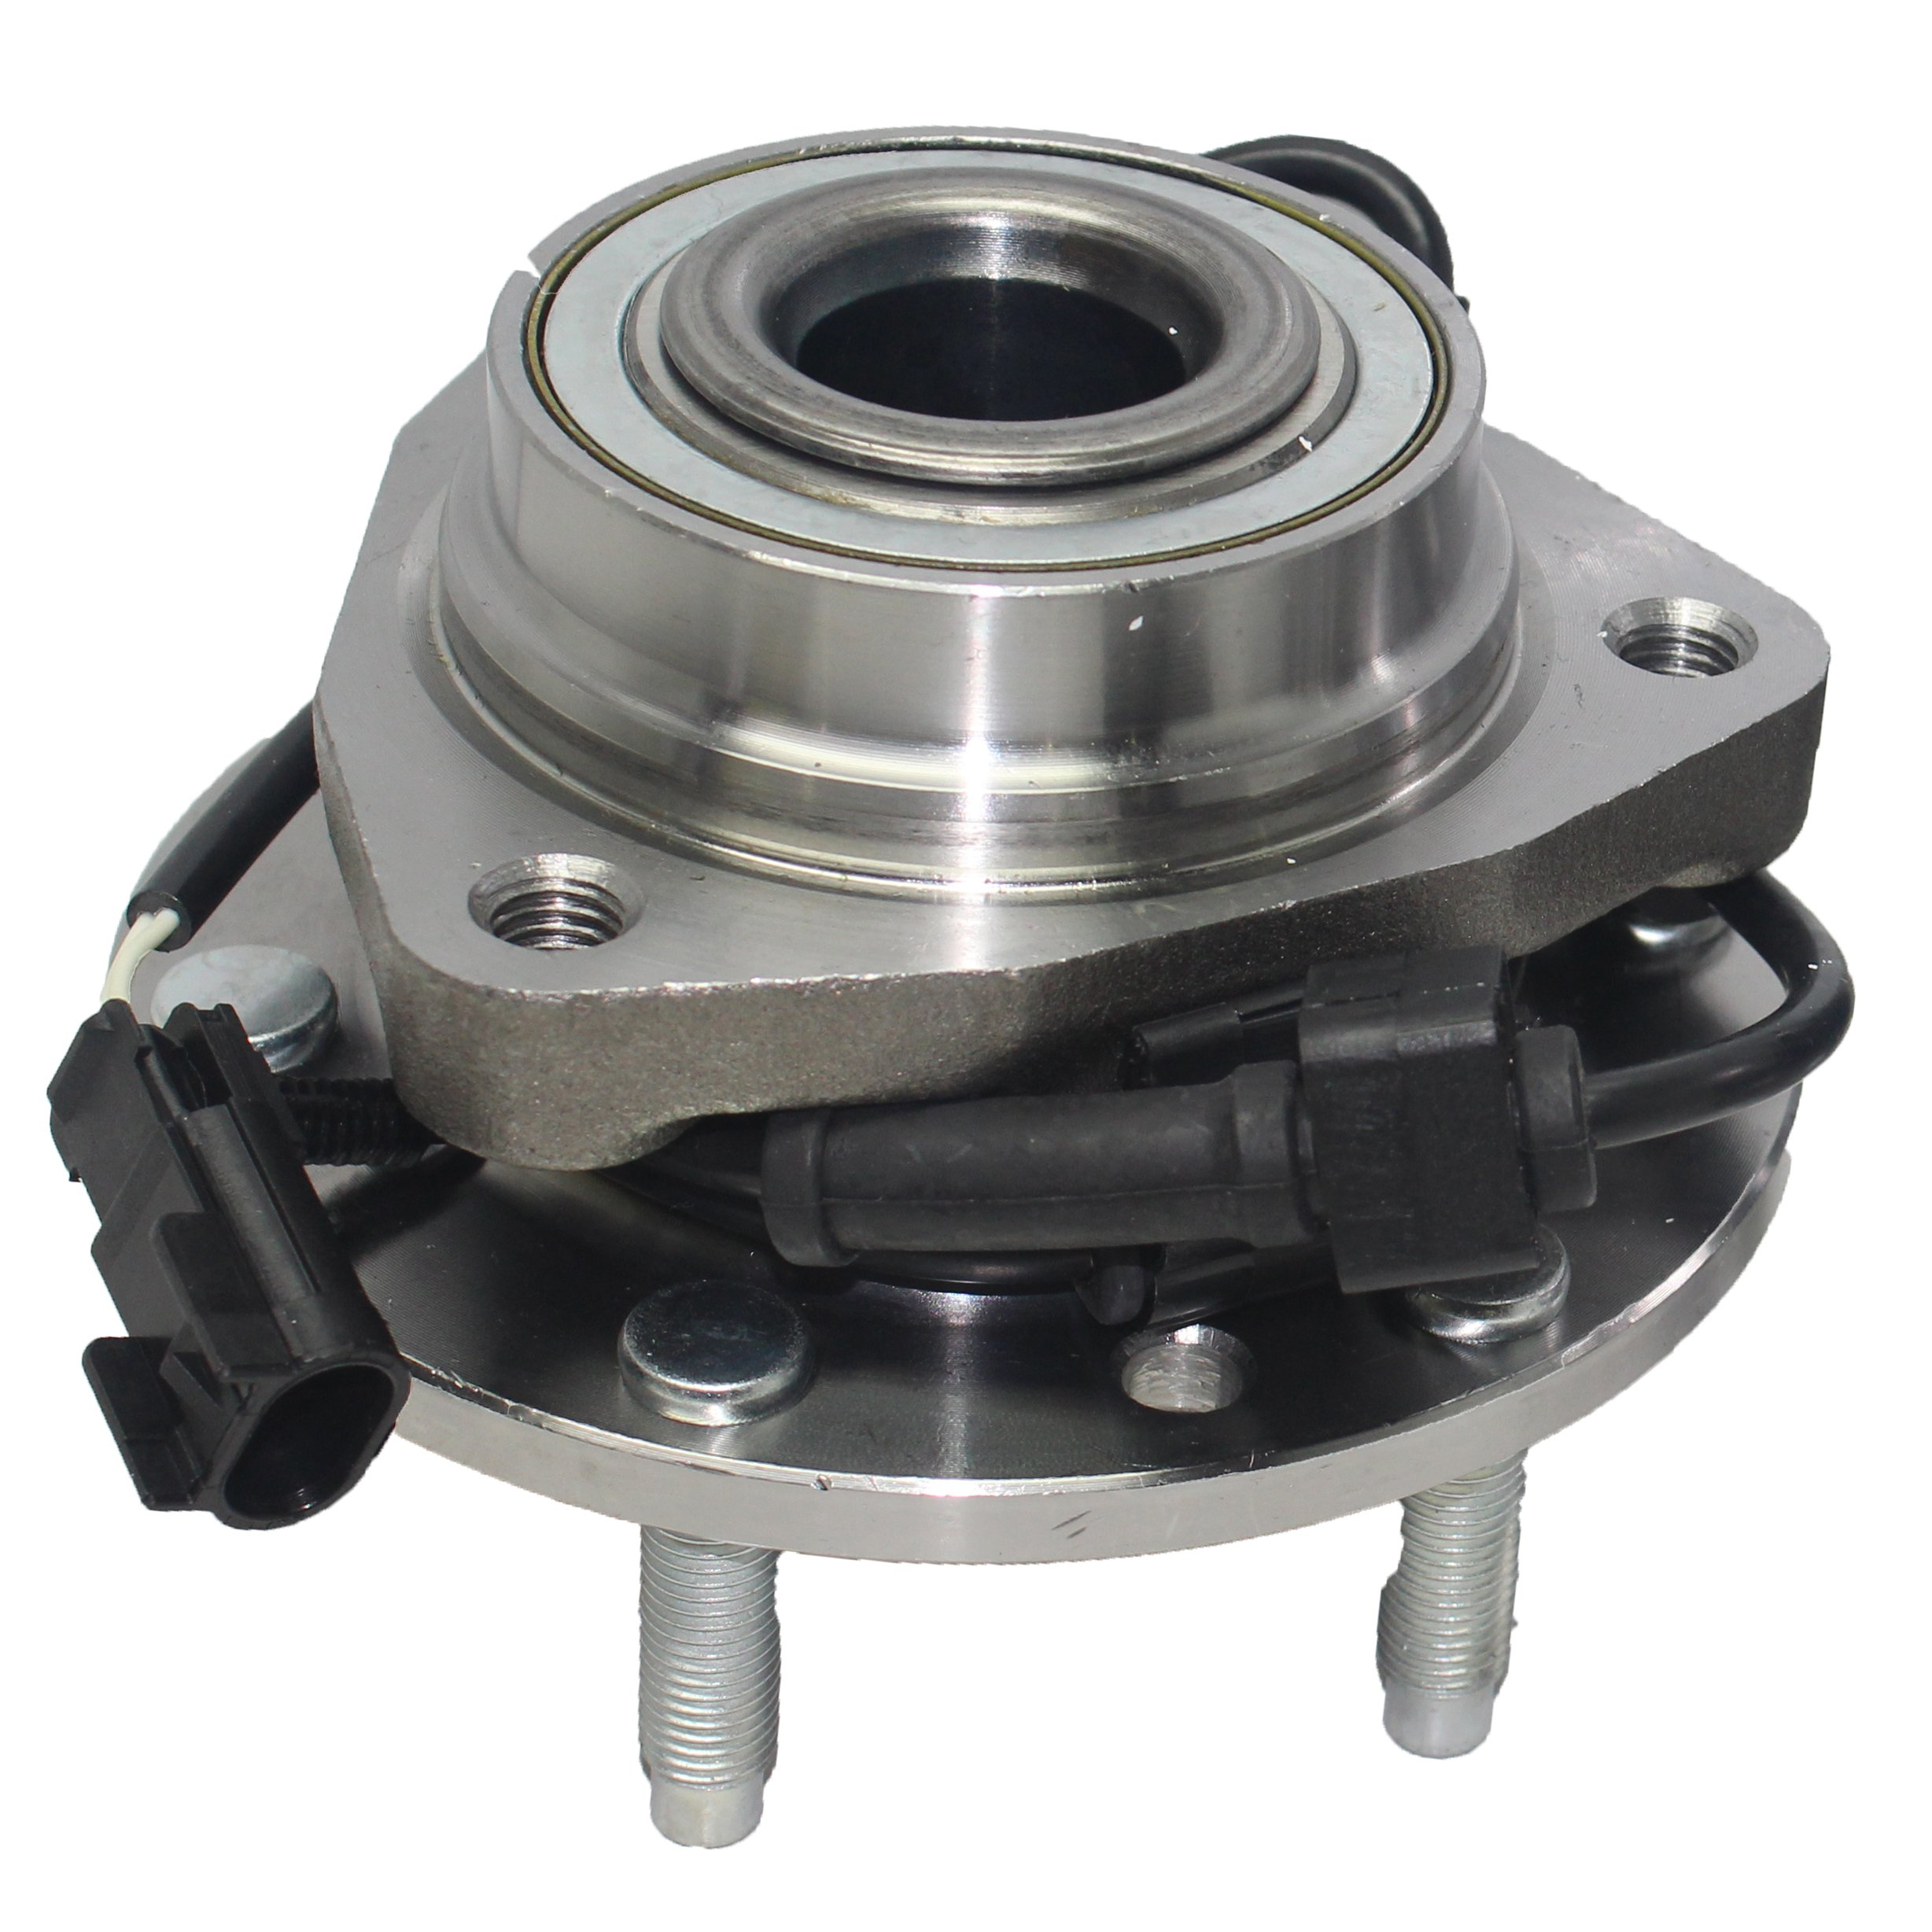 Brand New Front Wheel Bearing and Hub Assembly for Ascender, Envoy, Rainier, Trailblazer 6 Lug W/ABS 513188 by Detroit Axle